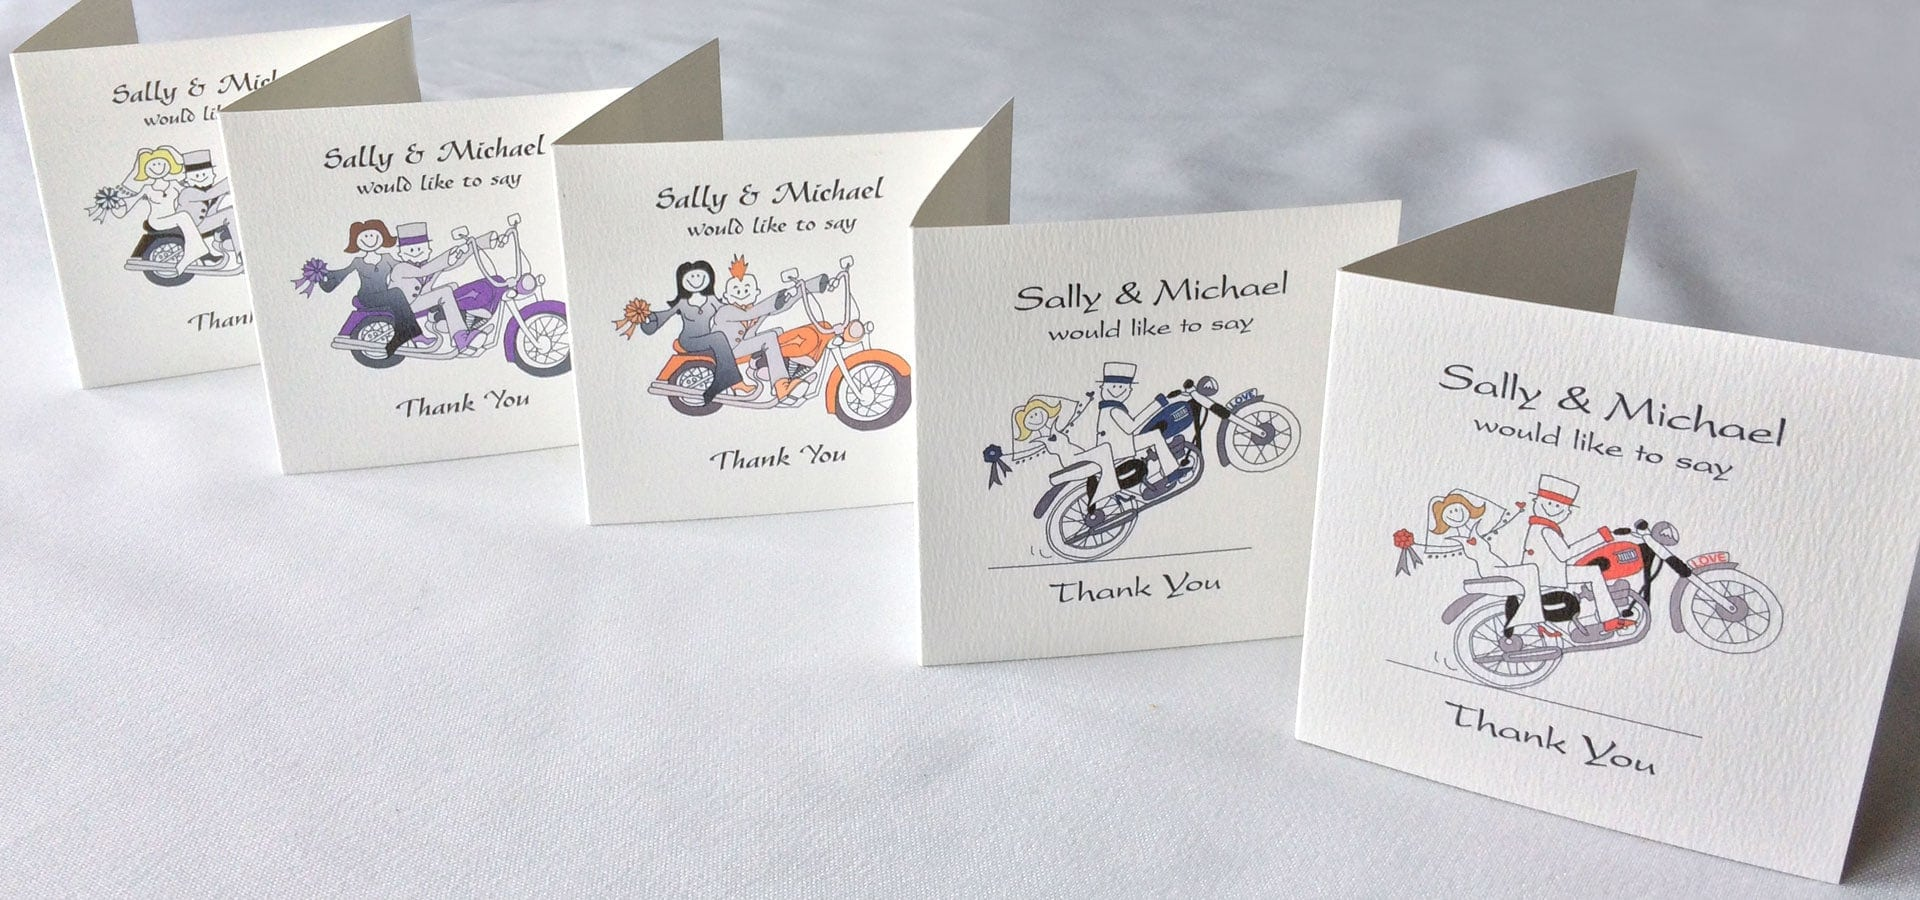 Thank you cards cool wedding stationery thank you cards altavistaventures Image collections